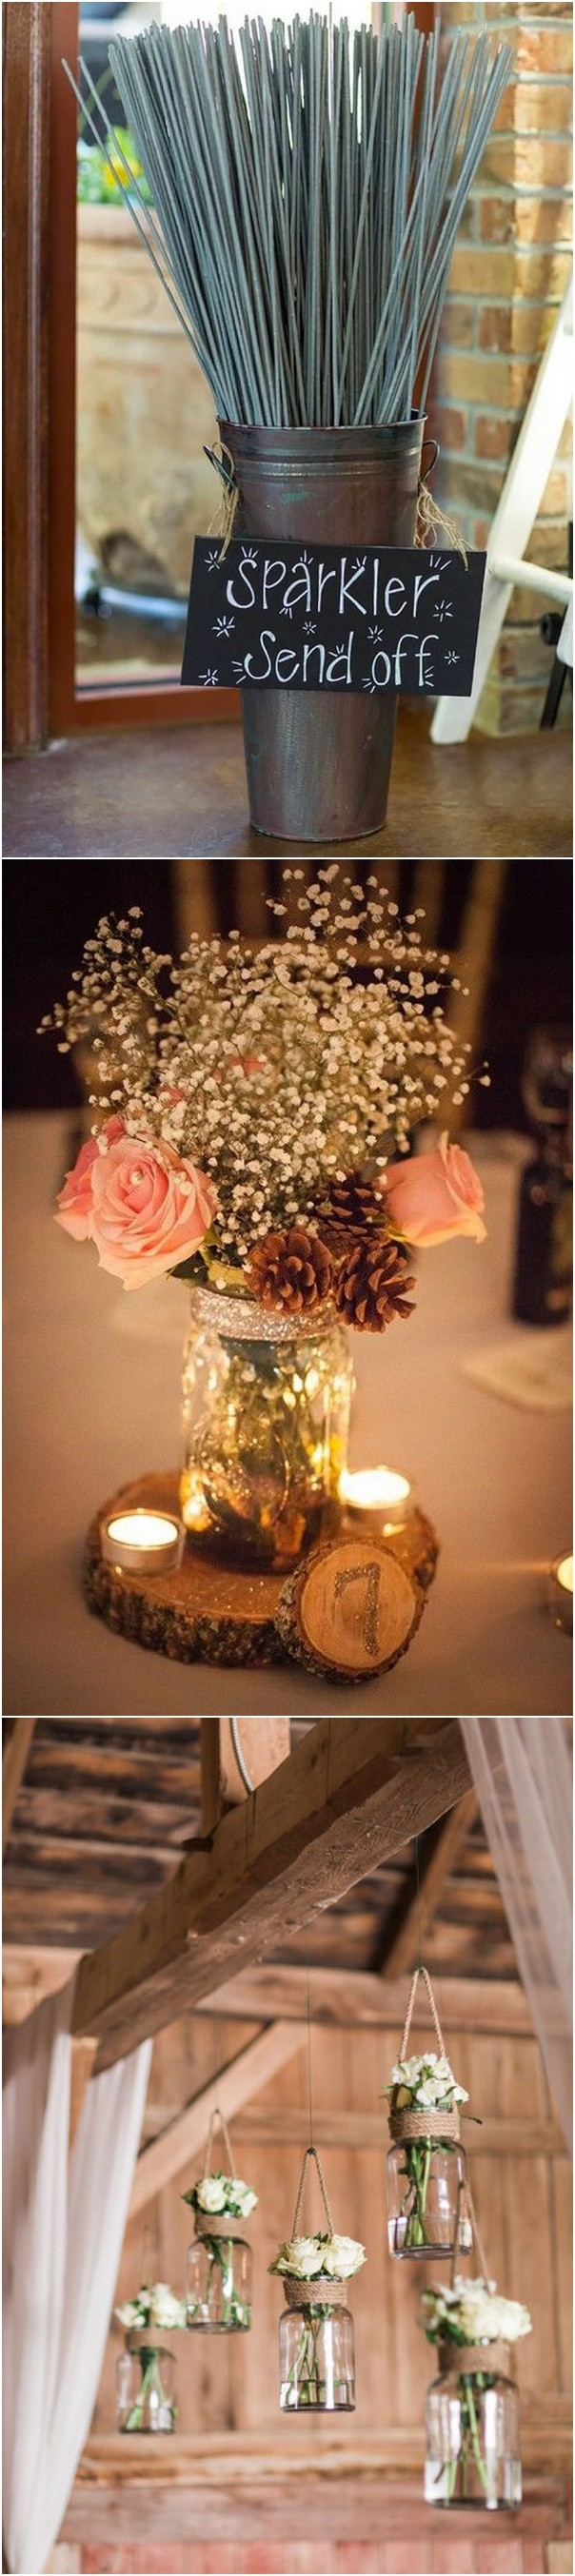 barn themed wedding decoration ideas